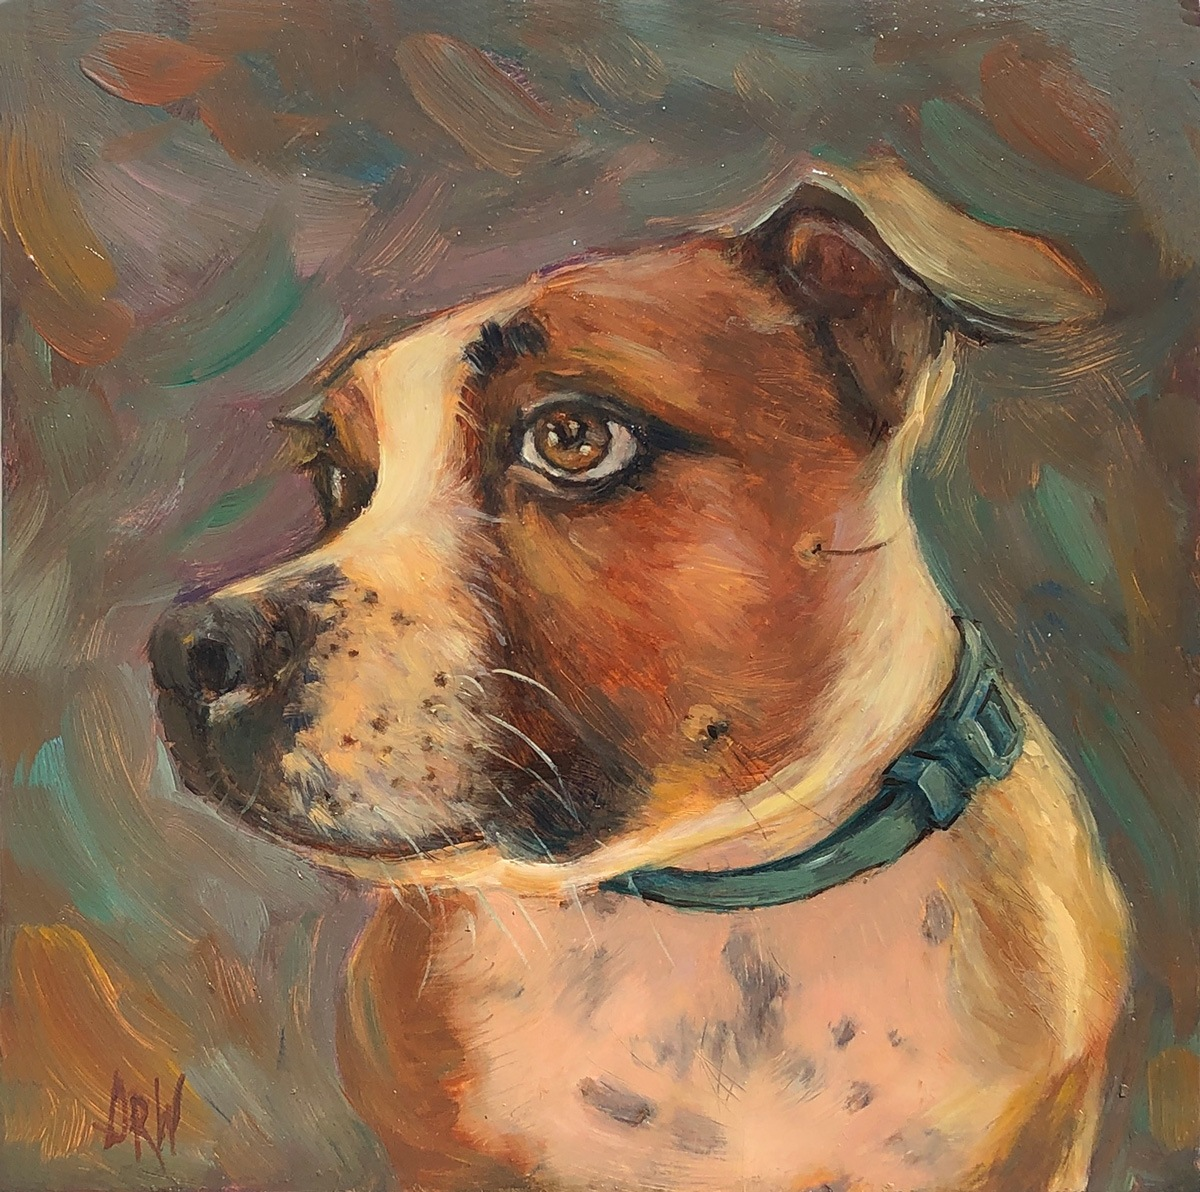 2020 Darla 10x10 oil on panel